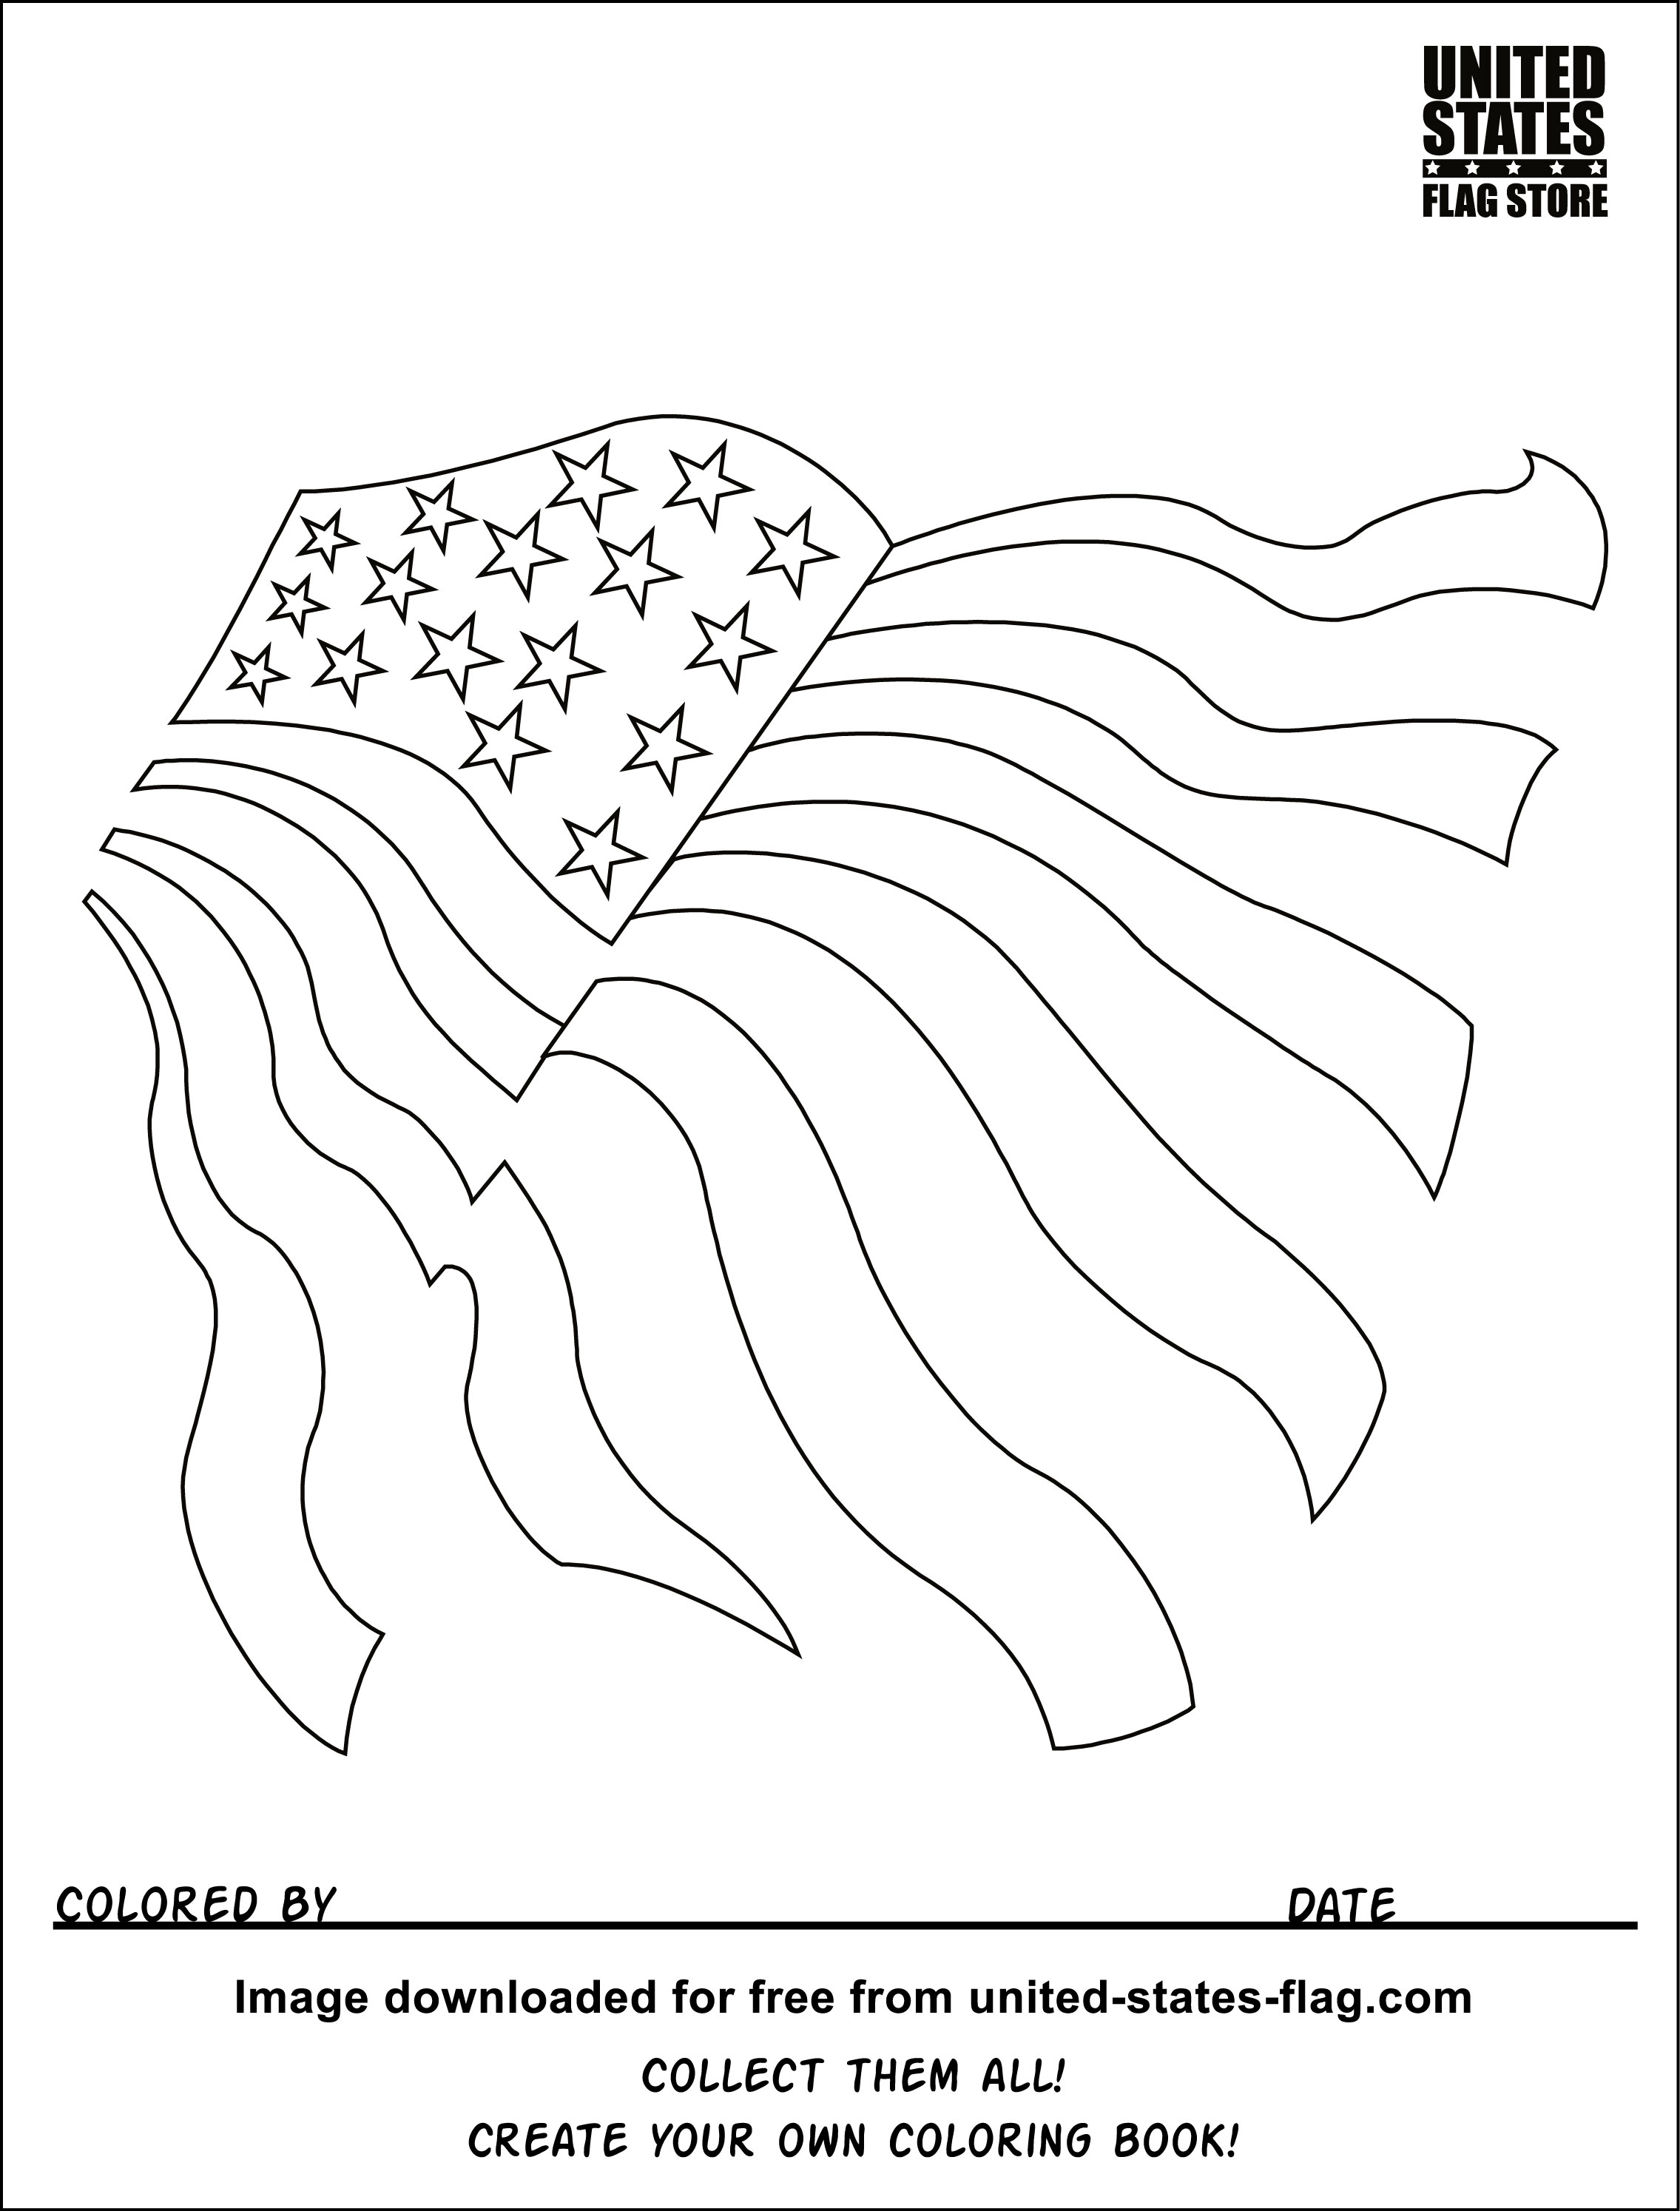 photograph about United States Flags Printable named United Suggests Flag Coloring Internet pages Printable at GetDrawings